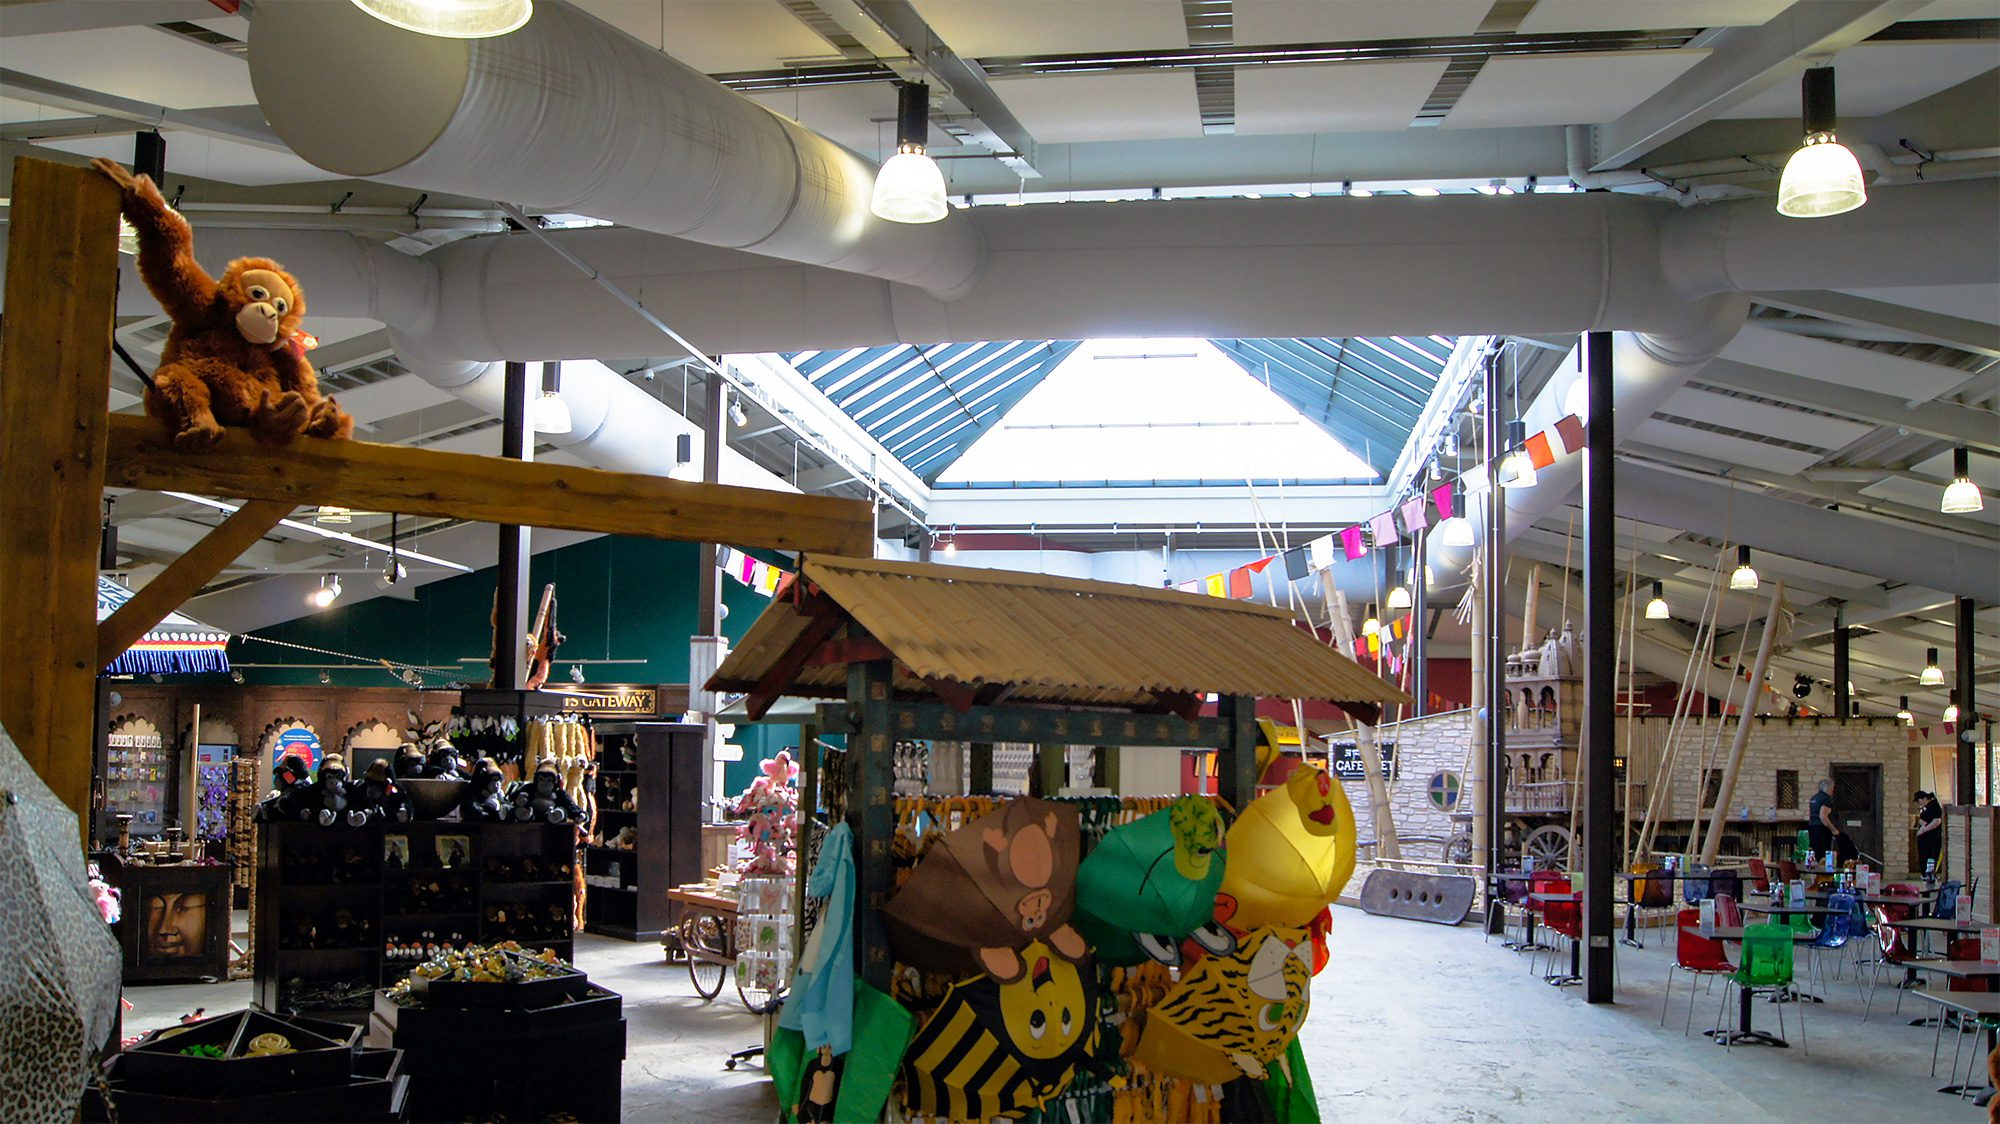 Twycross Zoo restaurant and gift shop with fabric ducting by Prihoda